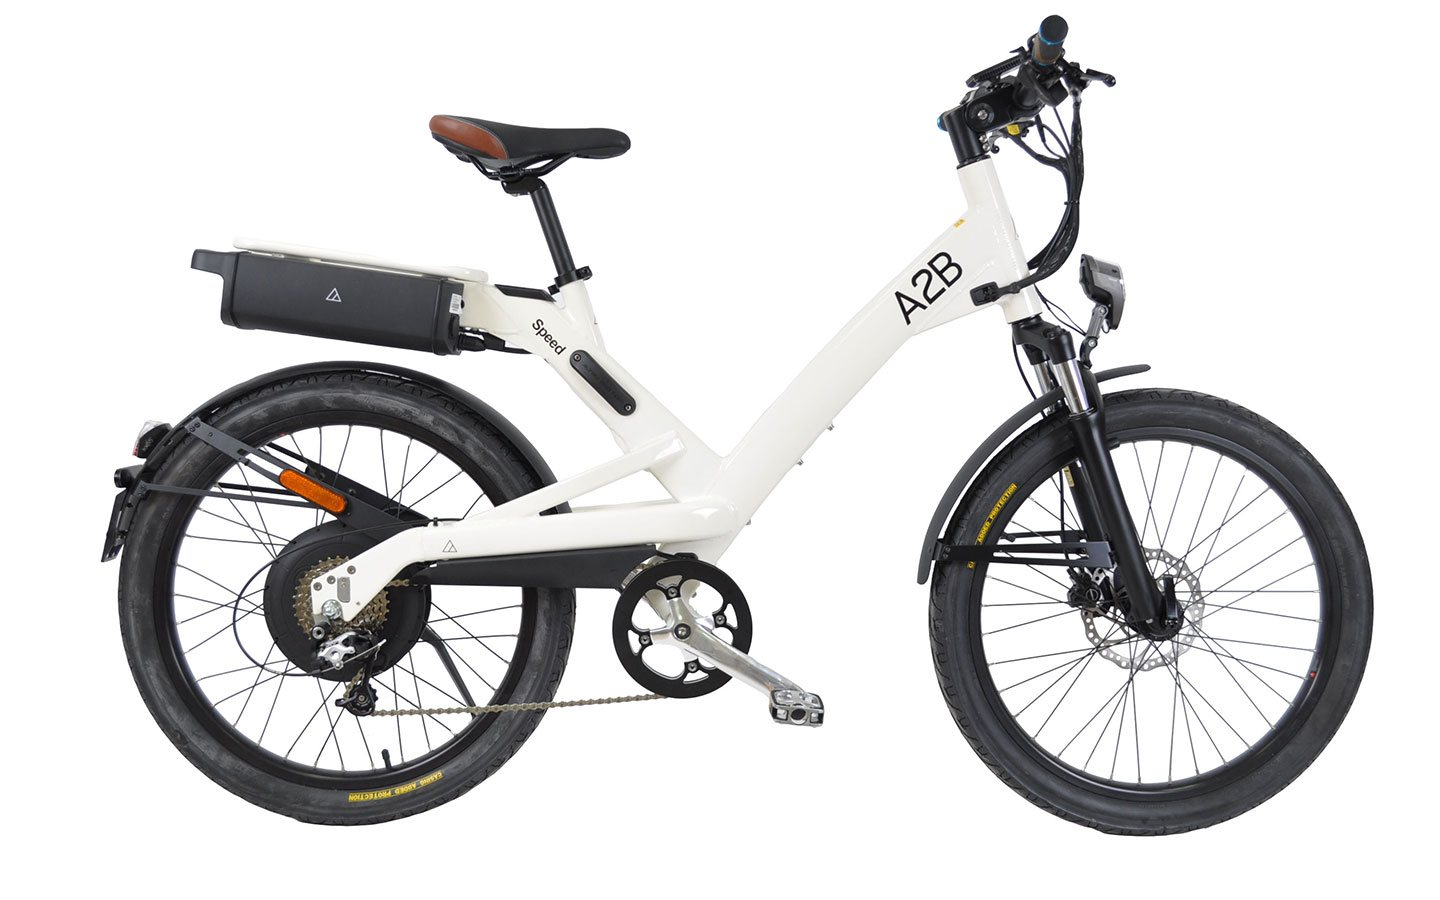 The High Delivery From 500 Watt Motor Is Married To A Strong Rigid Frame And Up Spec Hydraulic Brakes For Complete Package Making This Bike Very